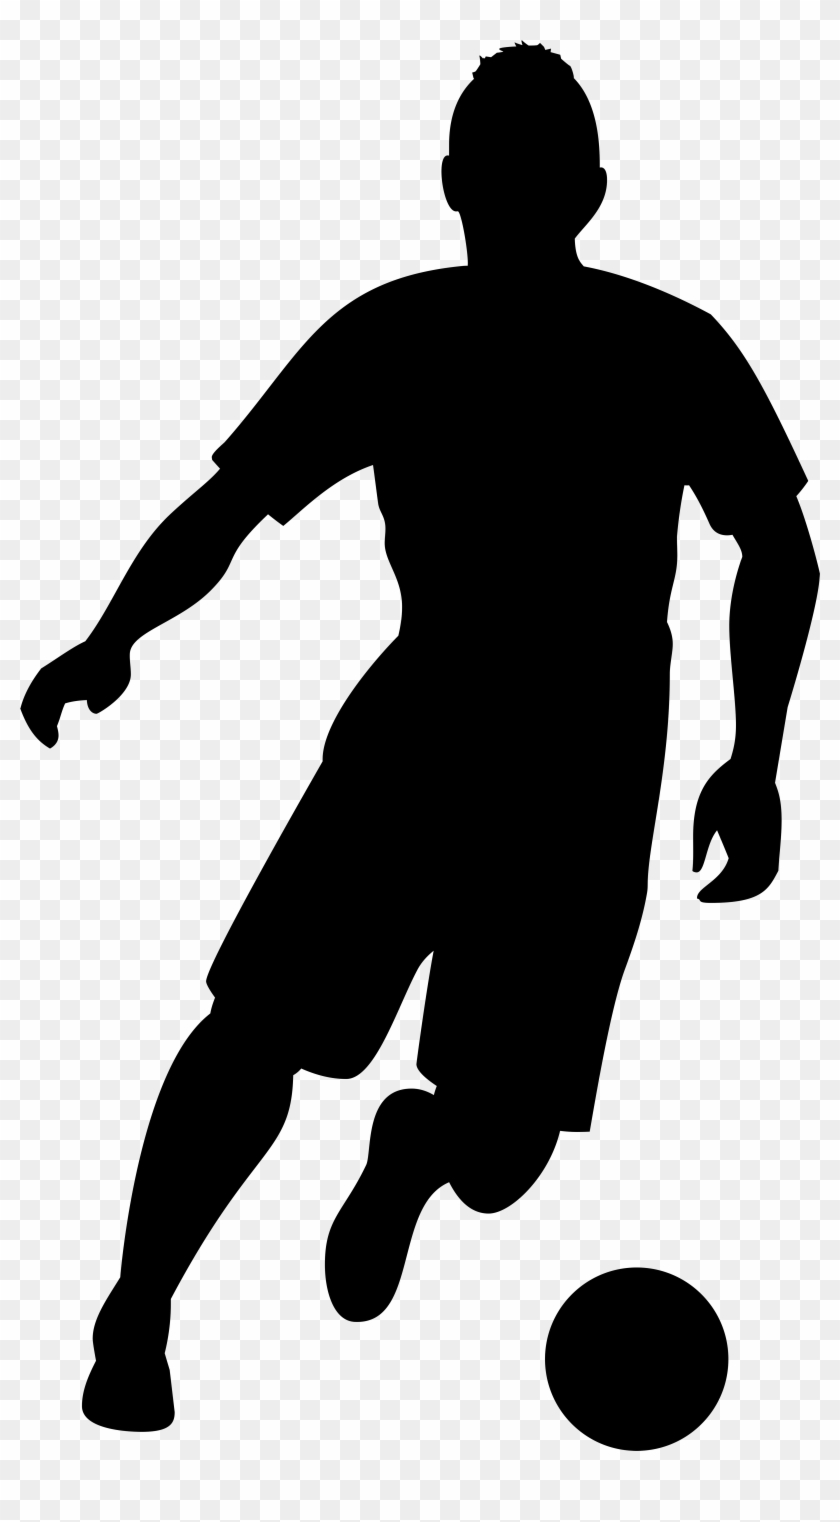 Football Player Silhouette Png Transparent Clip Art - Football Player Silhouette Png #6856